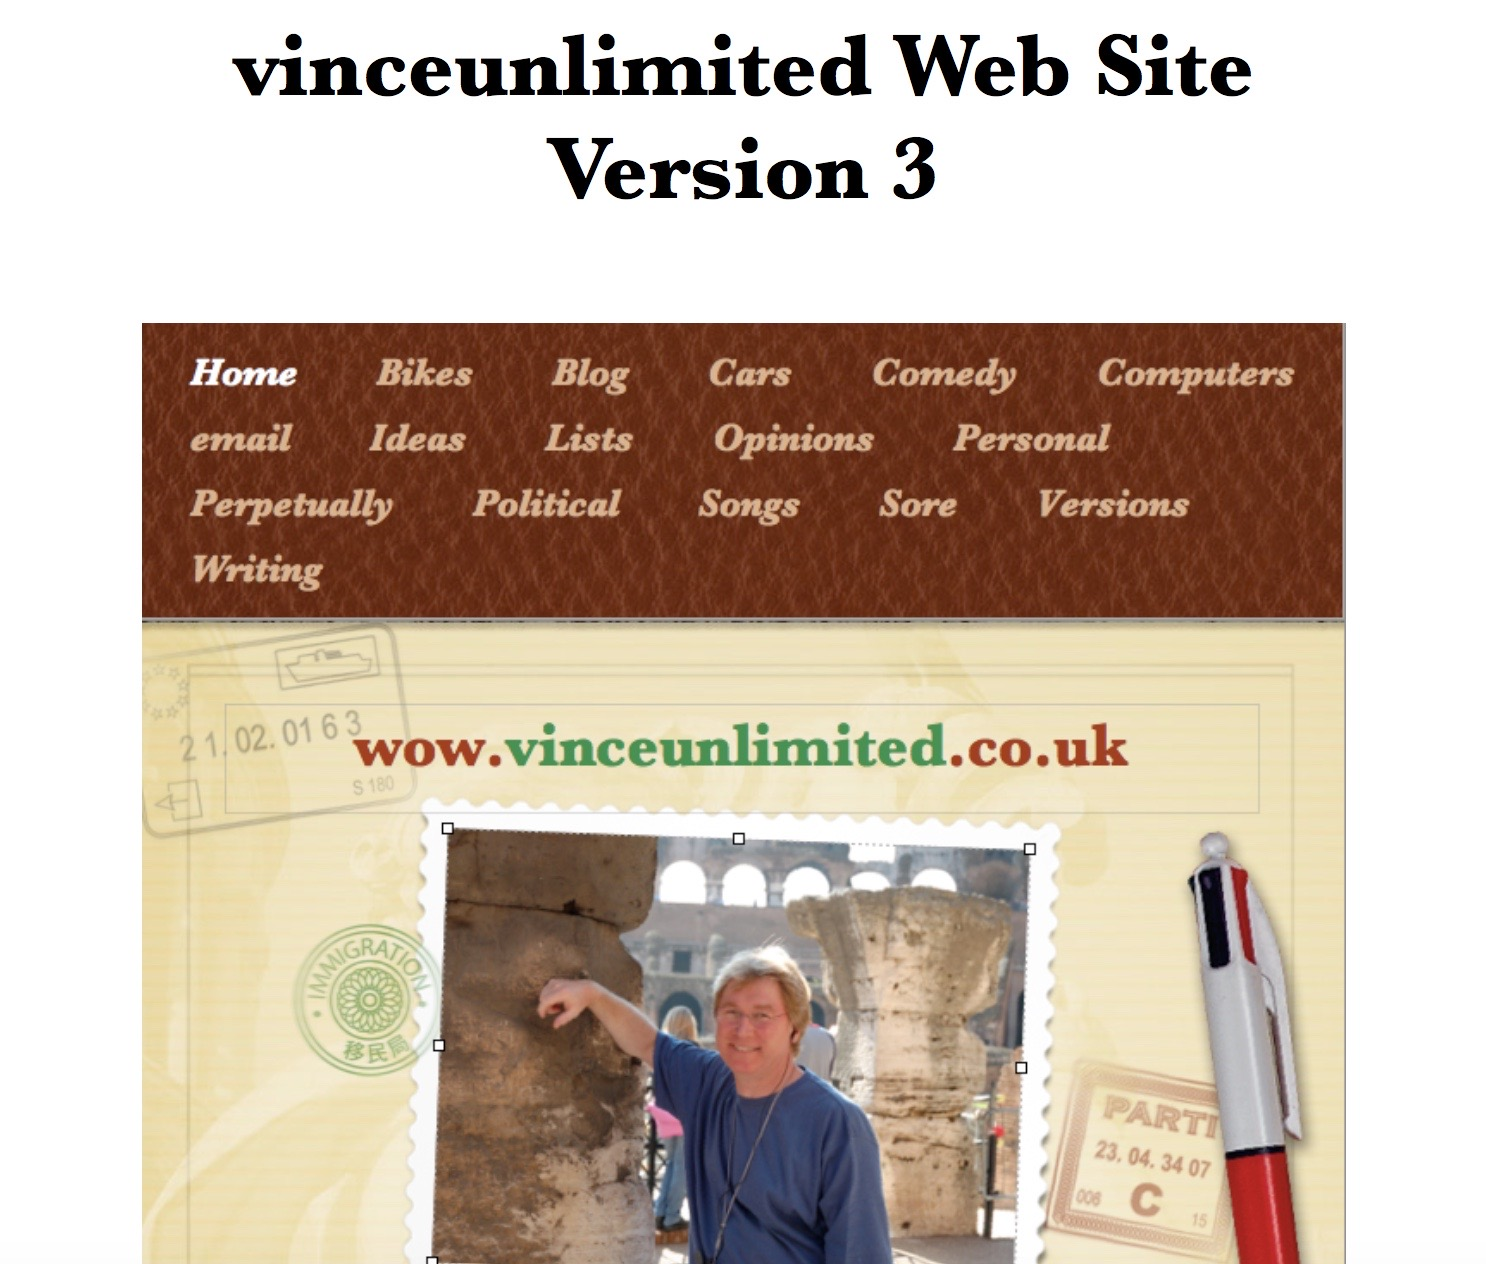 Screenshot of the Home page of vinceunlimited.co.uk version 3